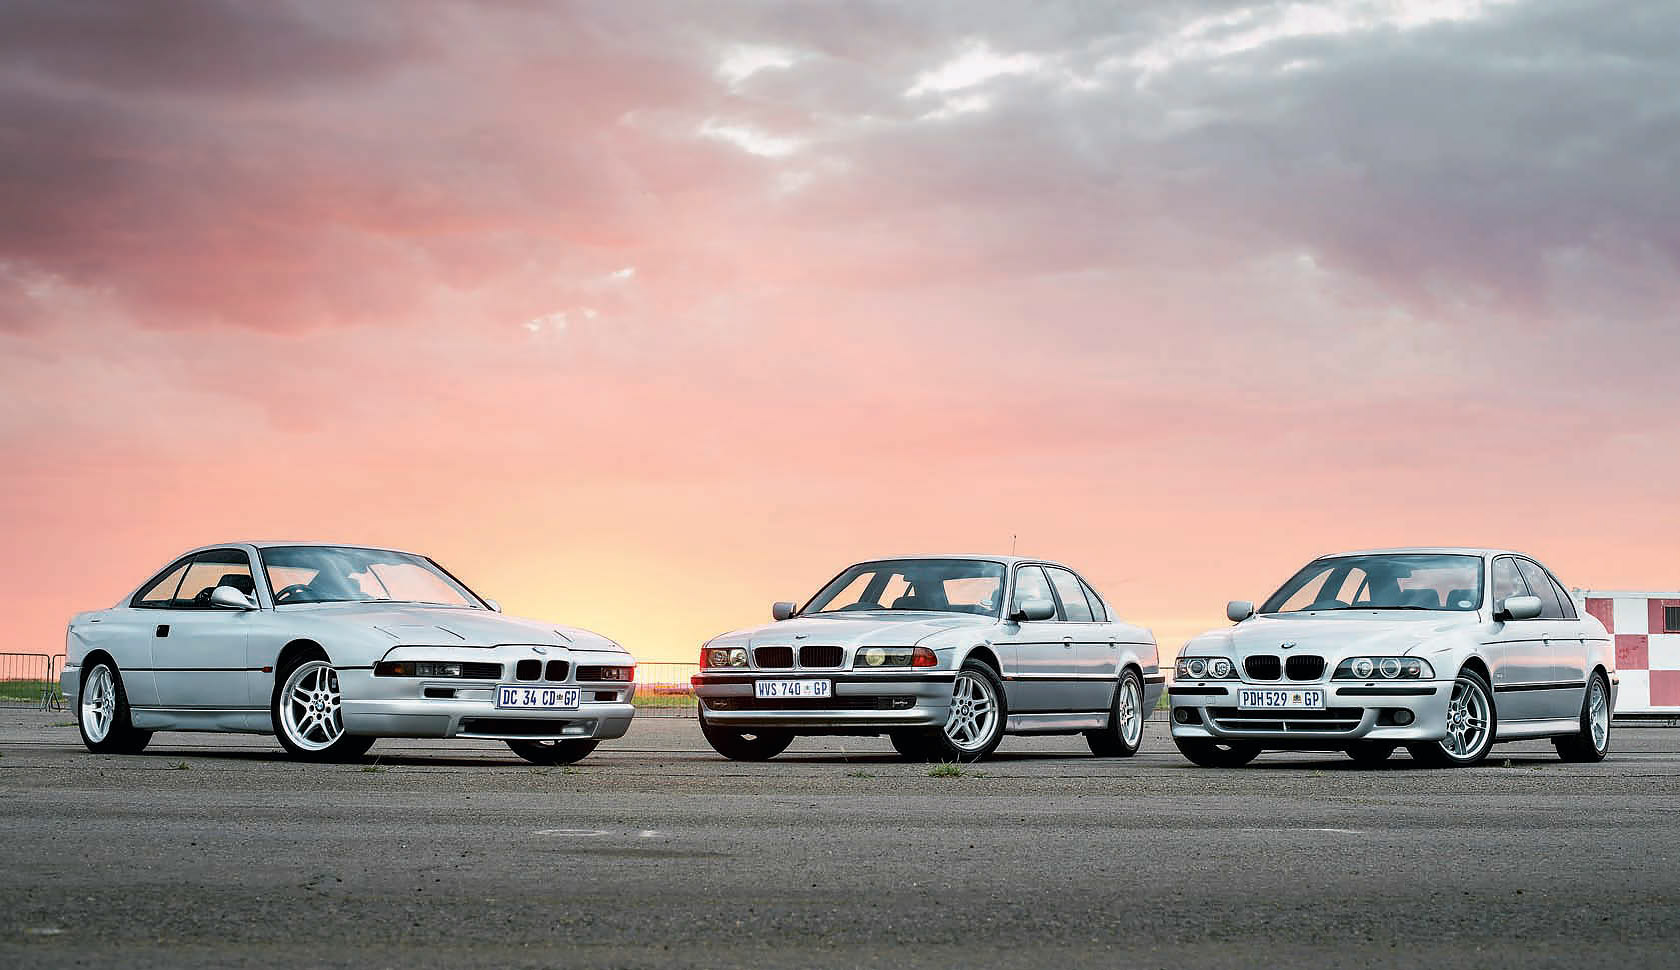 BMW E31 840Ci, E38 740i and E39 540i